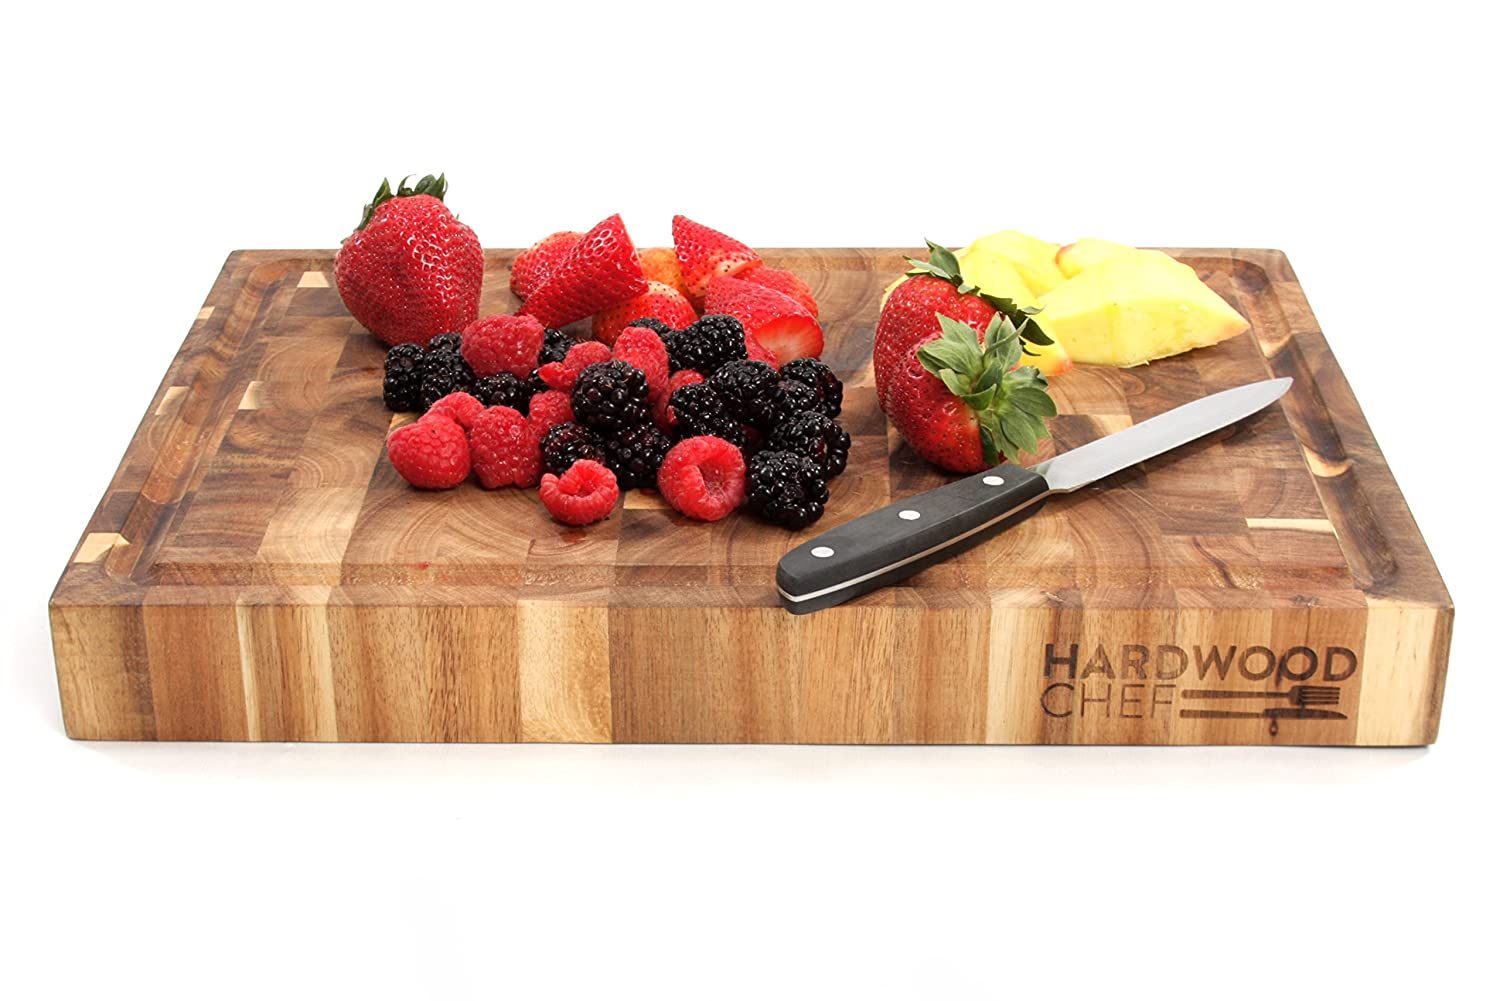 Hardwood Chef Acacia Wood Cutting Board Via Amazon